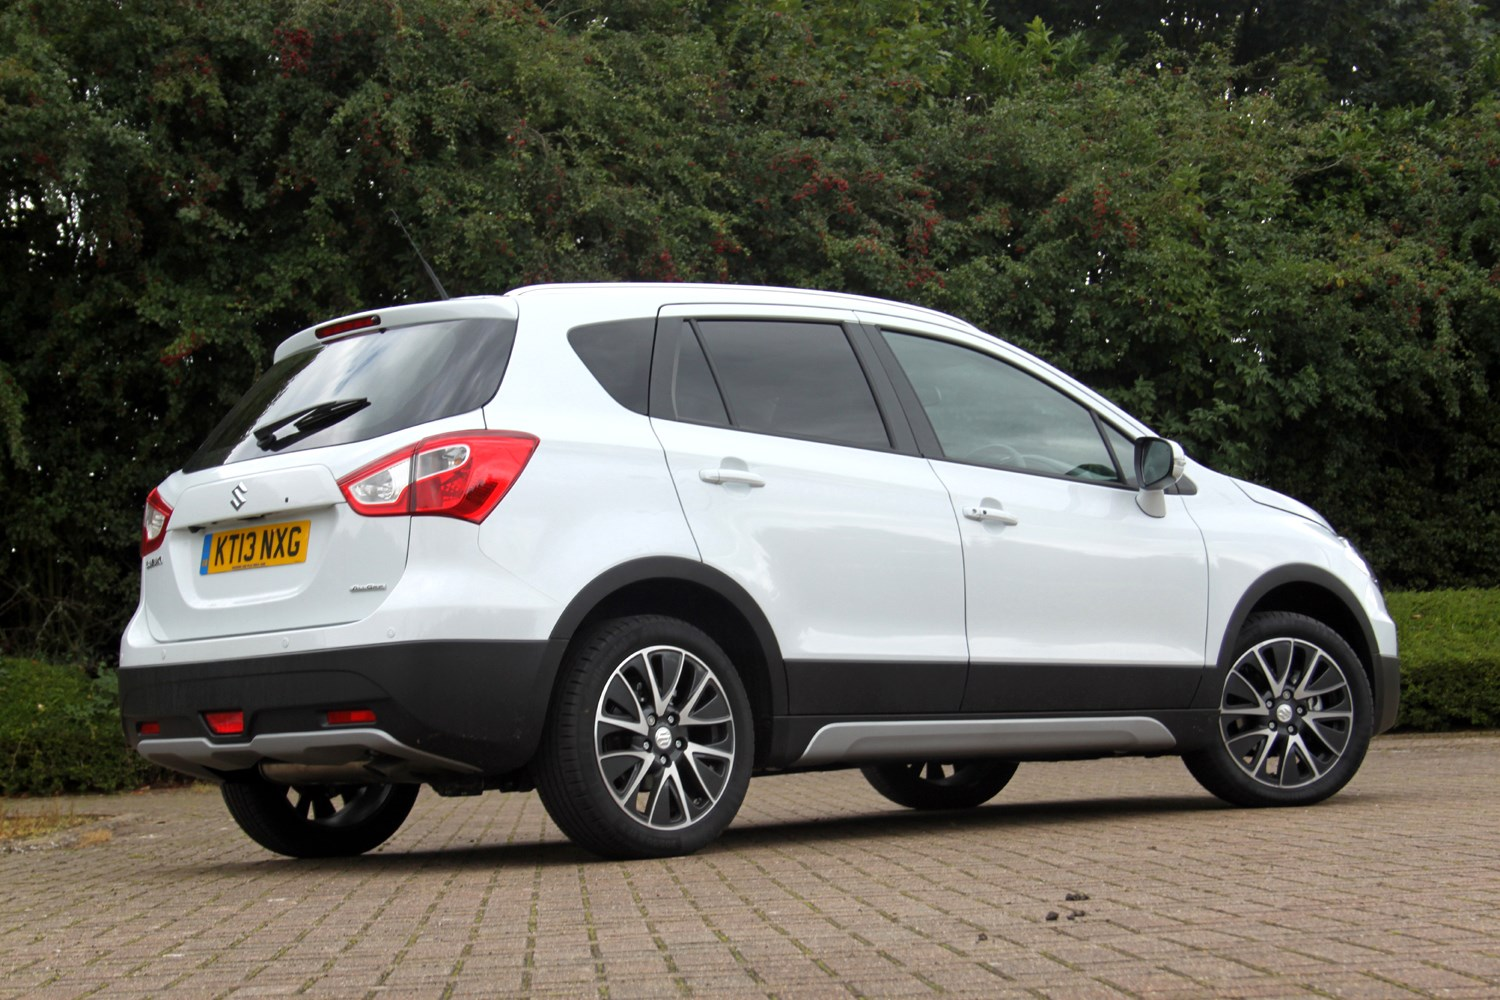 suzuki sx4 s cross hatchback review 2013 parkers. Black Bedroom Furniture Sets. Home Design Ideas